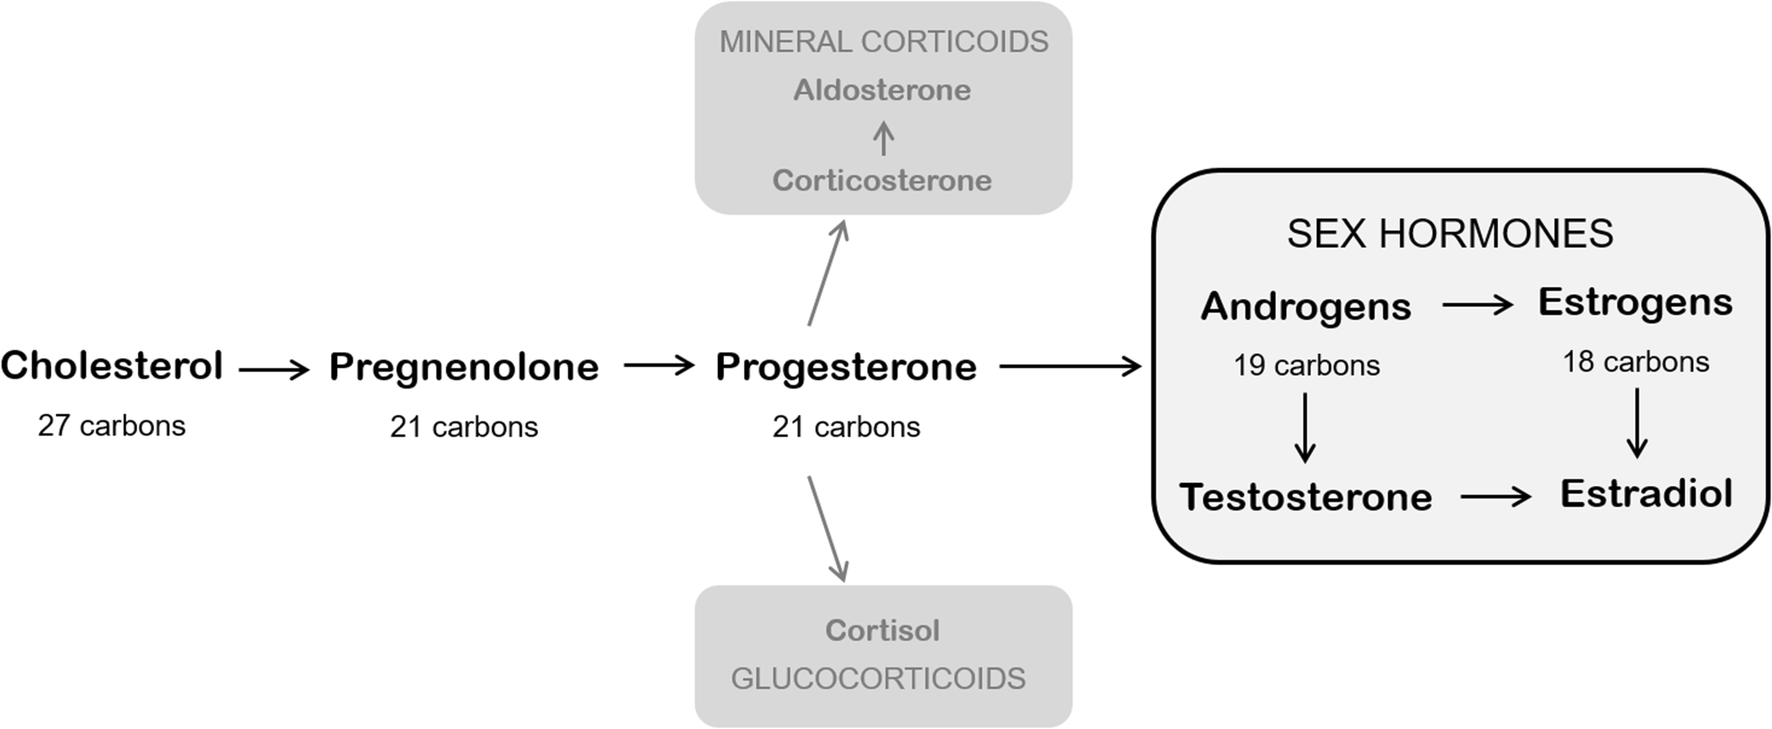 Steroid hormones androgens and estrogens dragon city cheats and hacks for gold food and gems